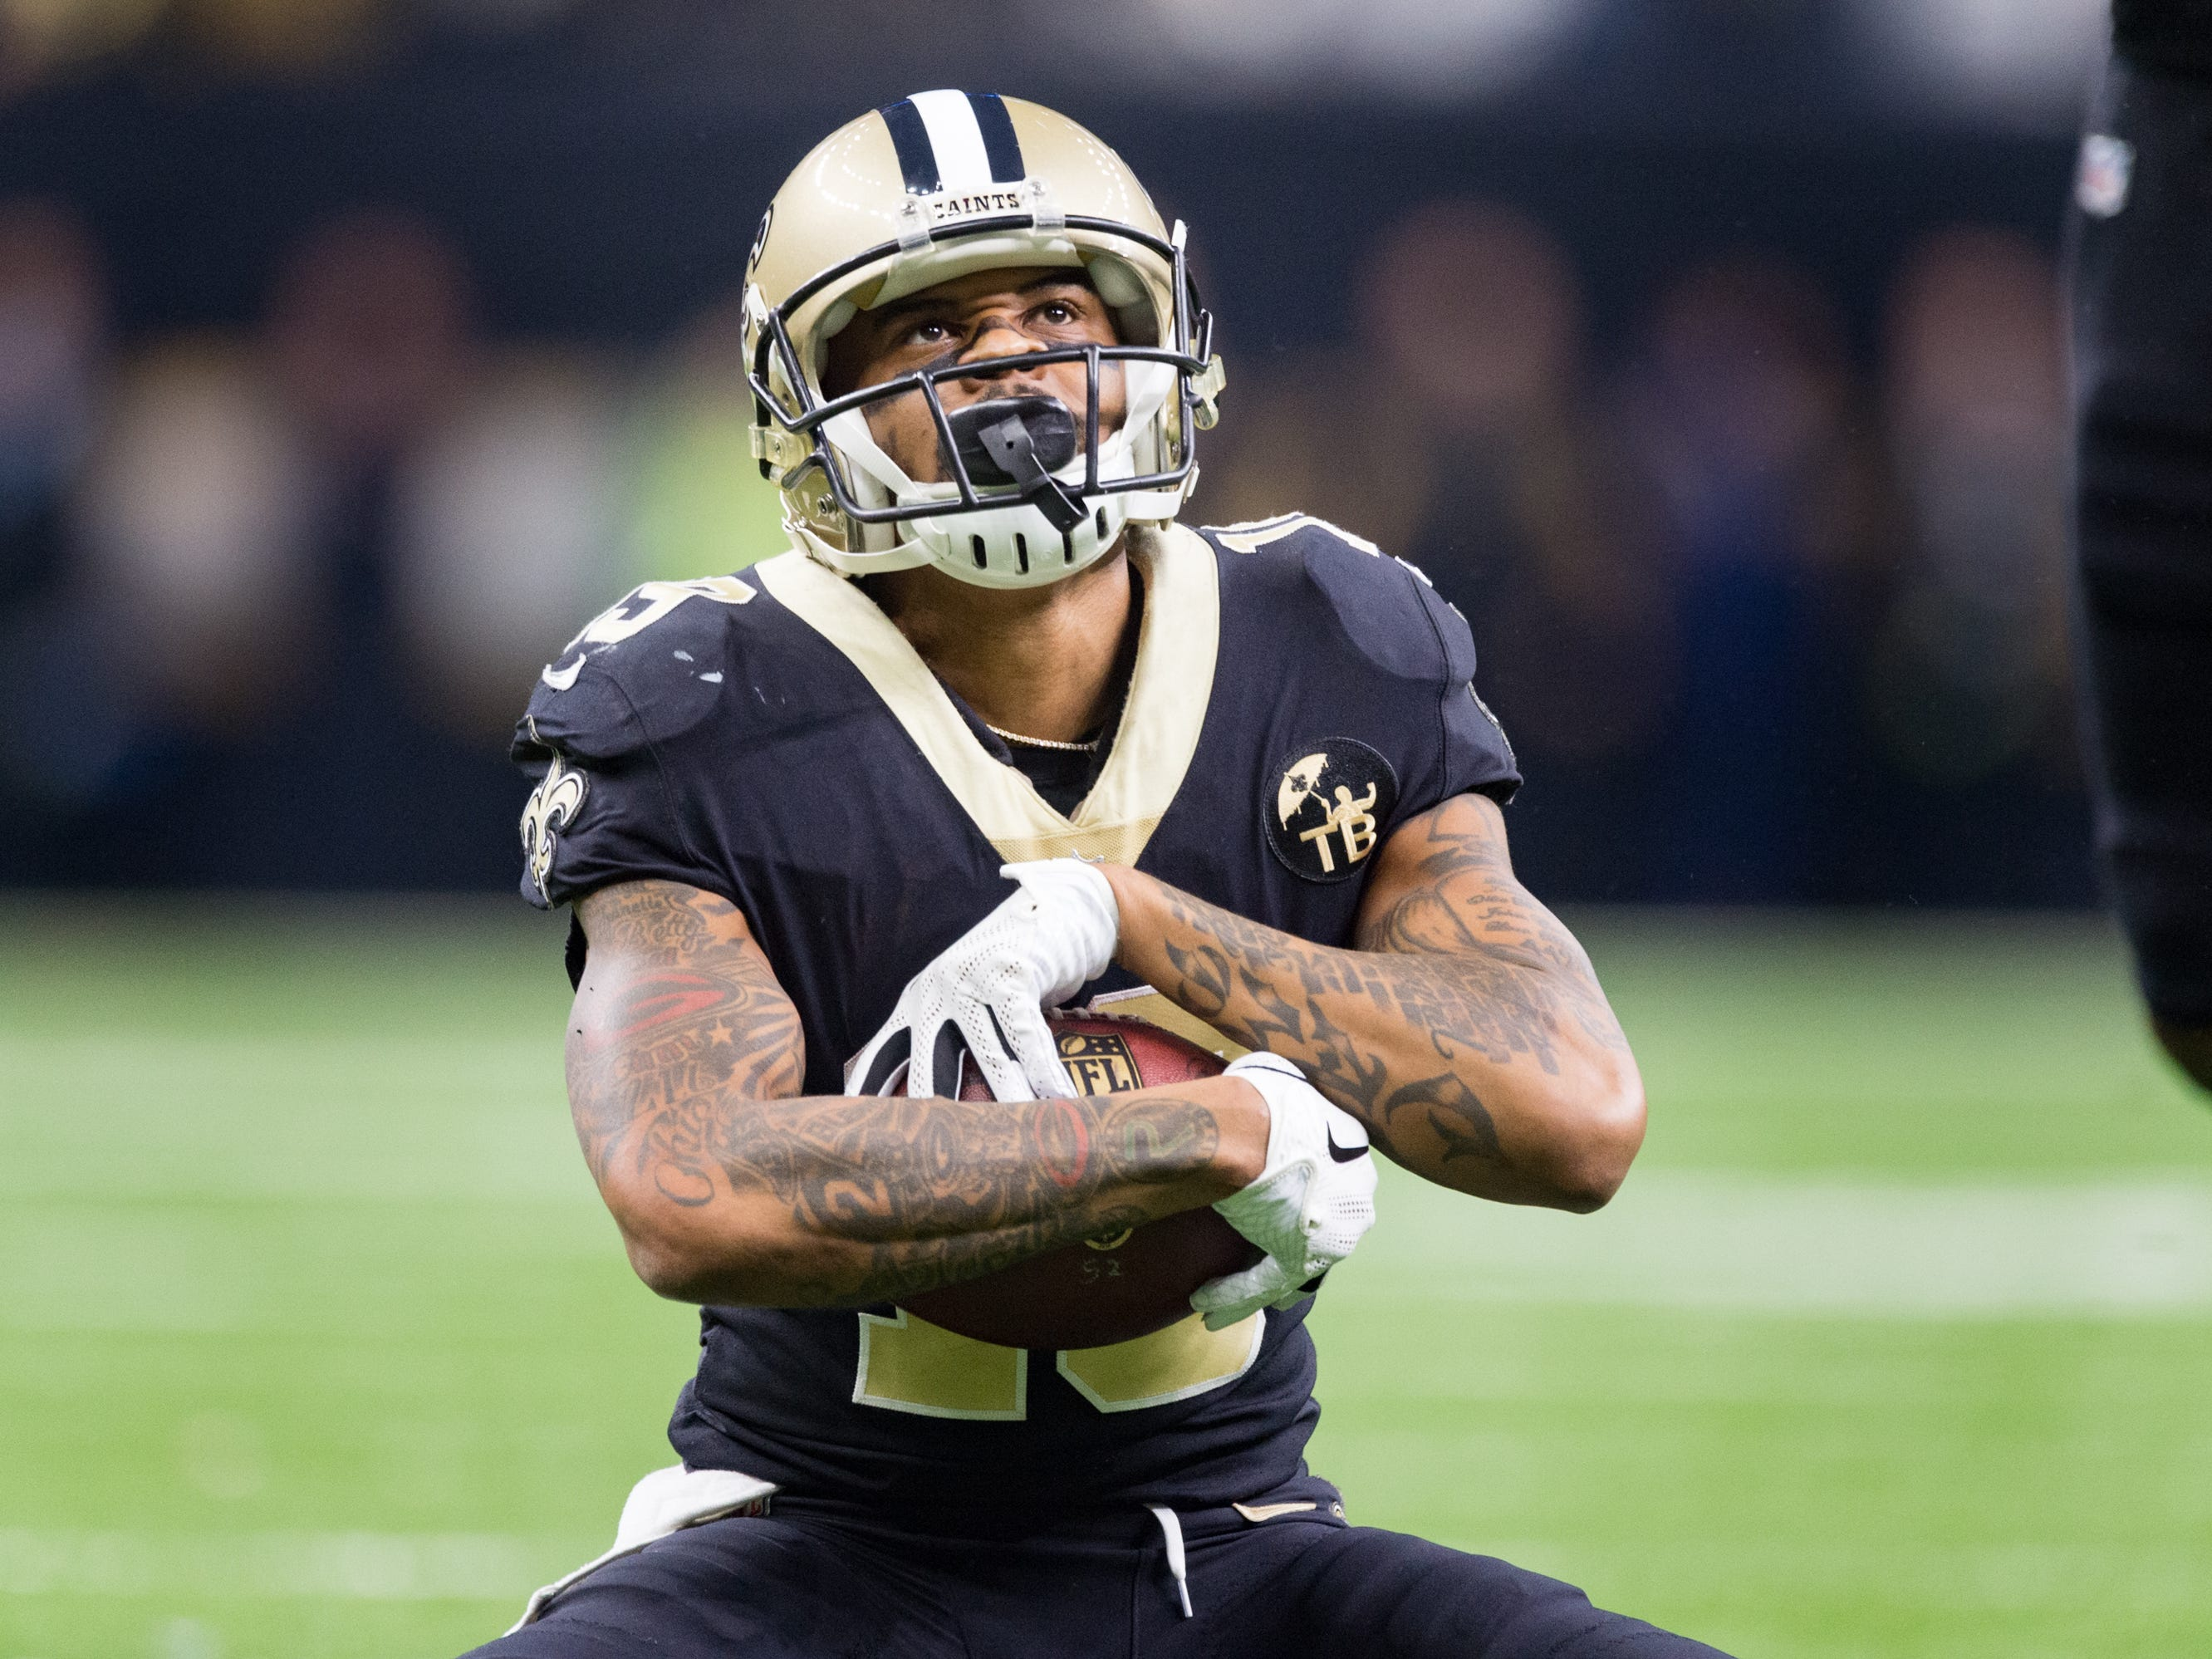 Saints receiver Ted Ginn Jr makes a catch for a first down and poses for a photo with Michael Thomas during the NFC Championship playoff football game between the New Orleans Saints and the Los Angeles Rams at the Mercedes-Benz Superdome in New Orleans. Sunday, Jan. 20, 2019.